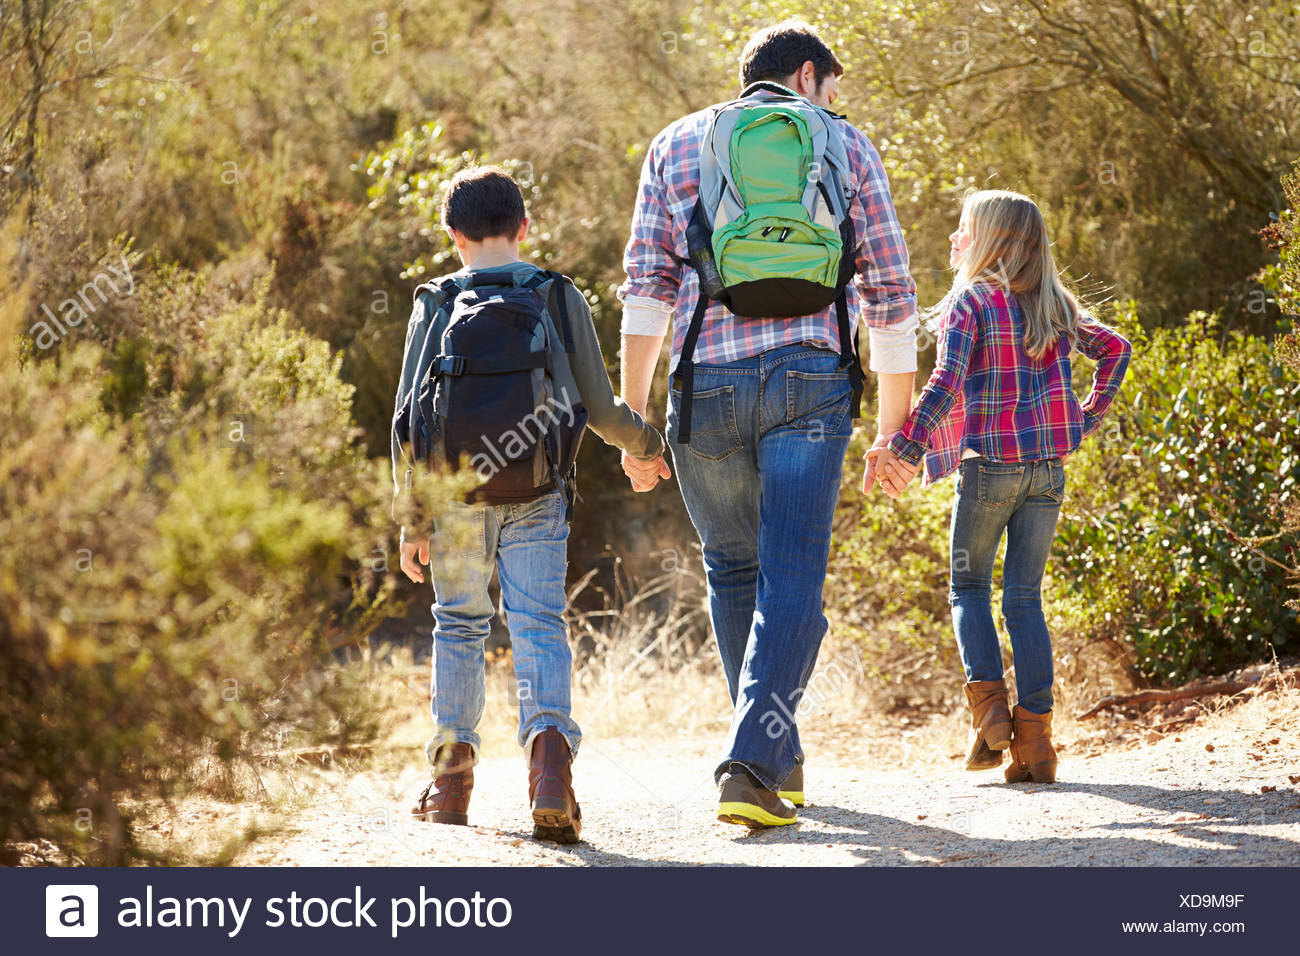 Rear View Of Father And Children Hiking In Countryside - Stock Image